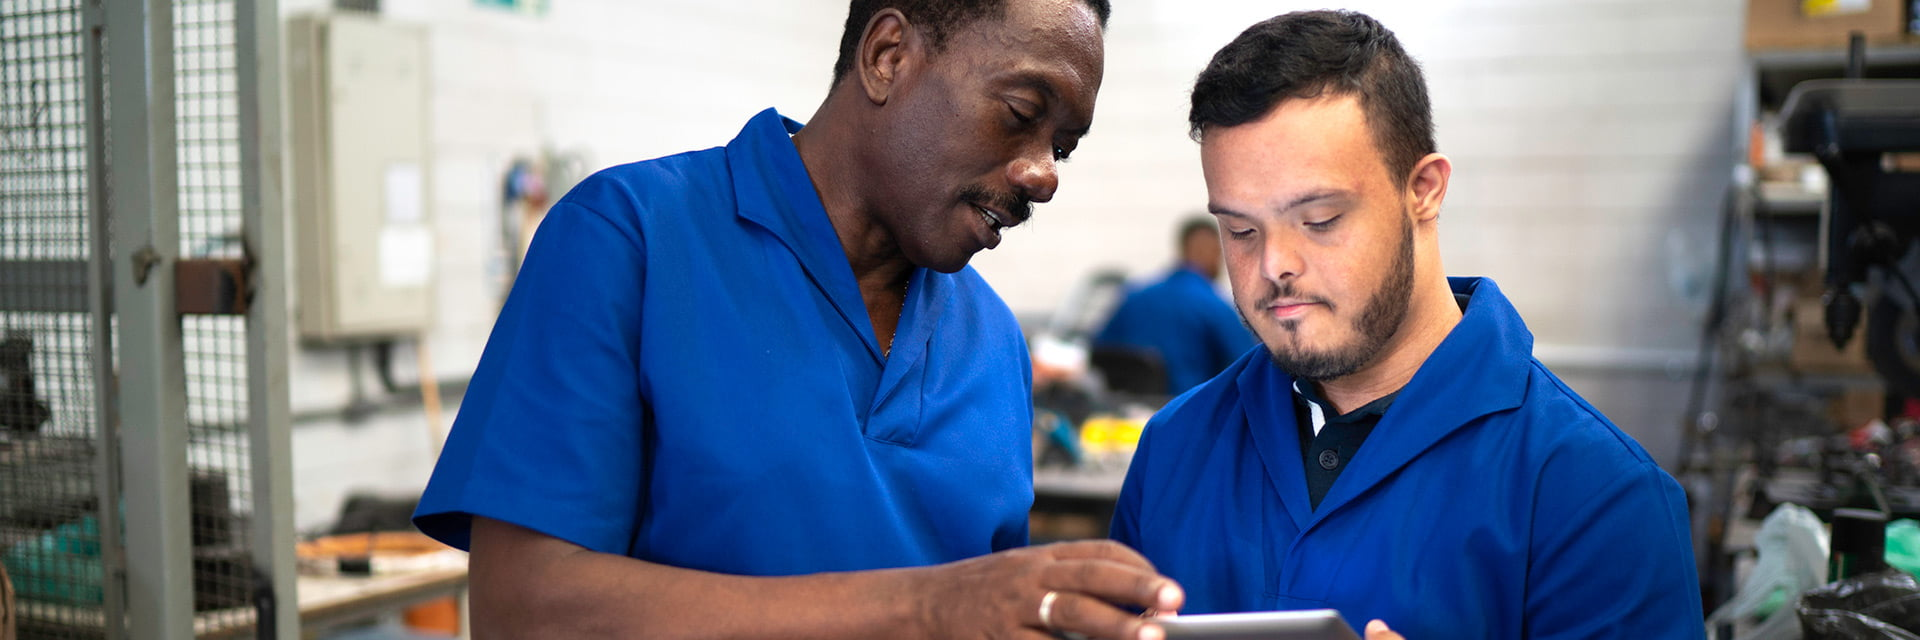 Supported Employee with a disability and his supervisor in the workplace